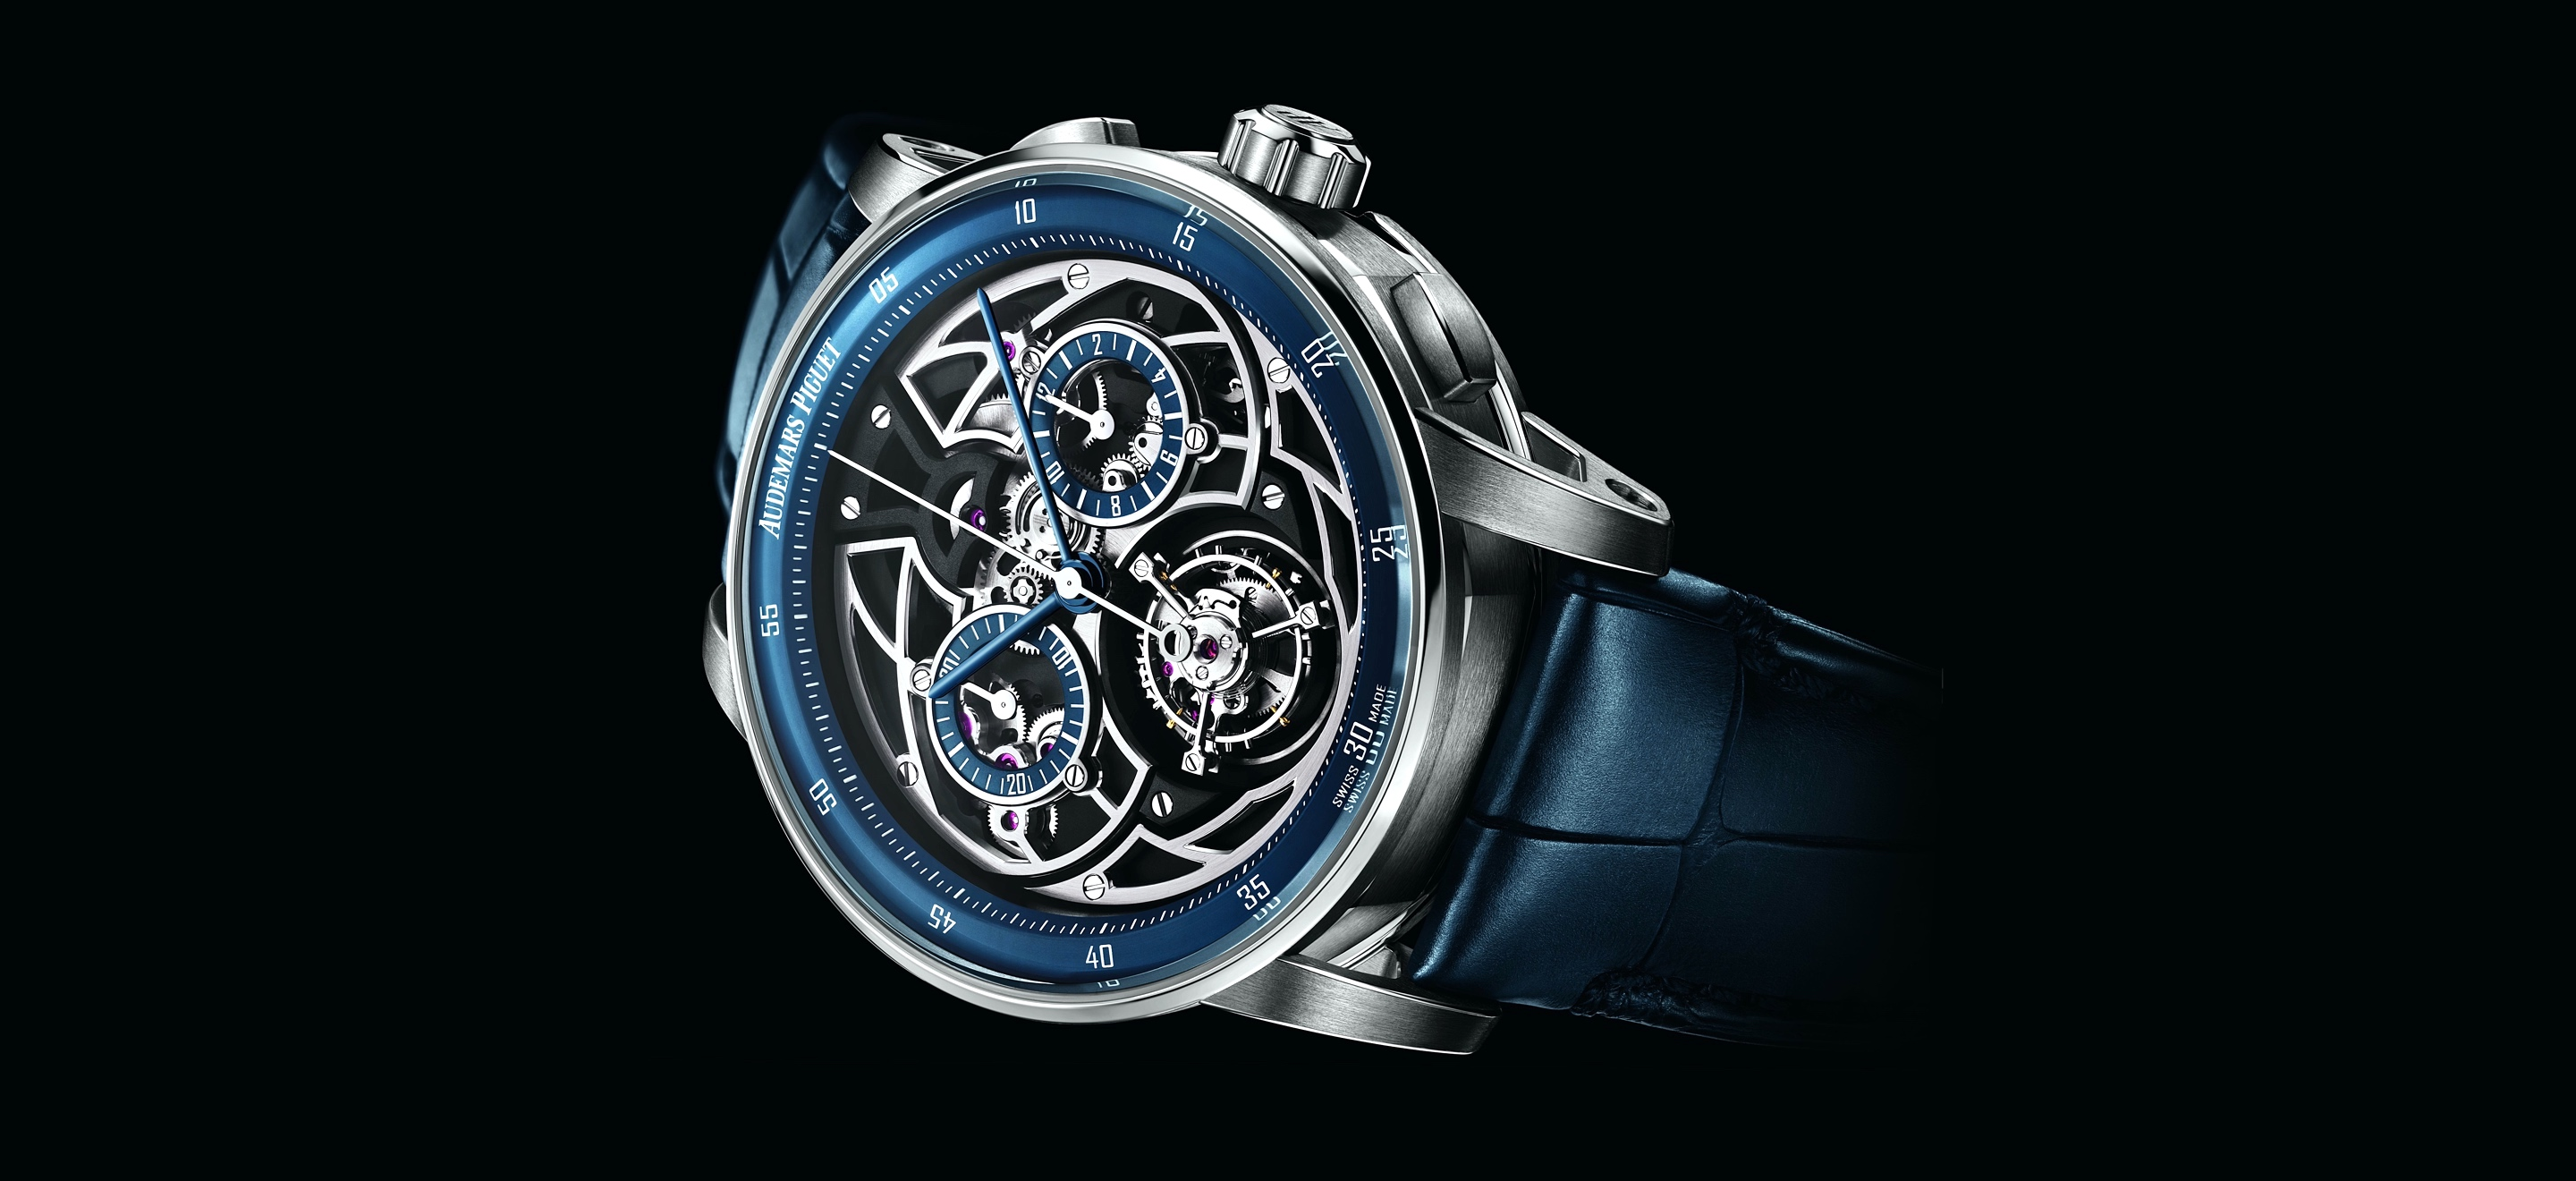 Audemars Piguet Code 11.59 Selfwinding Flying Tourbillon Chronograph - cover